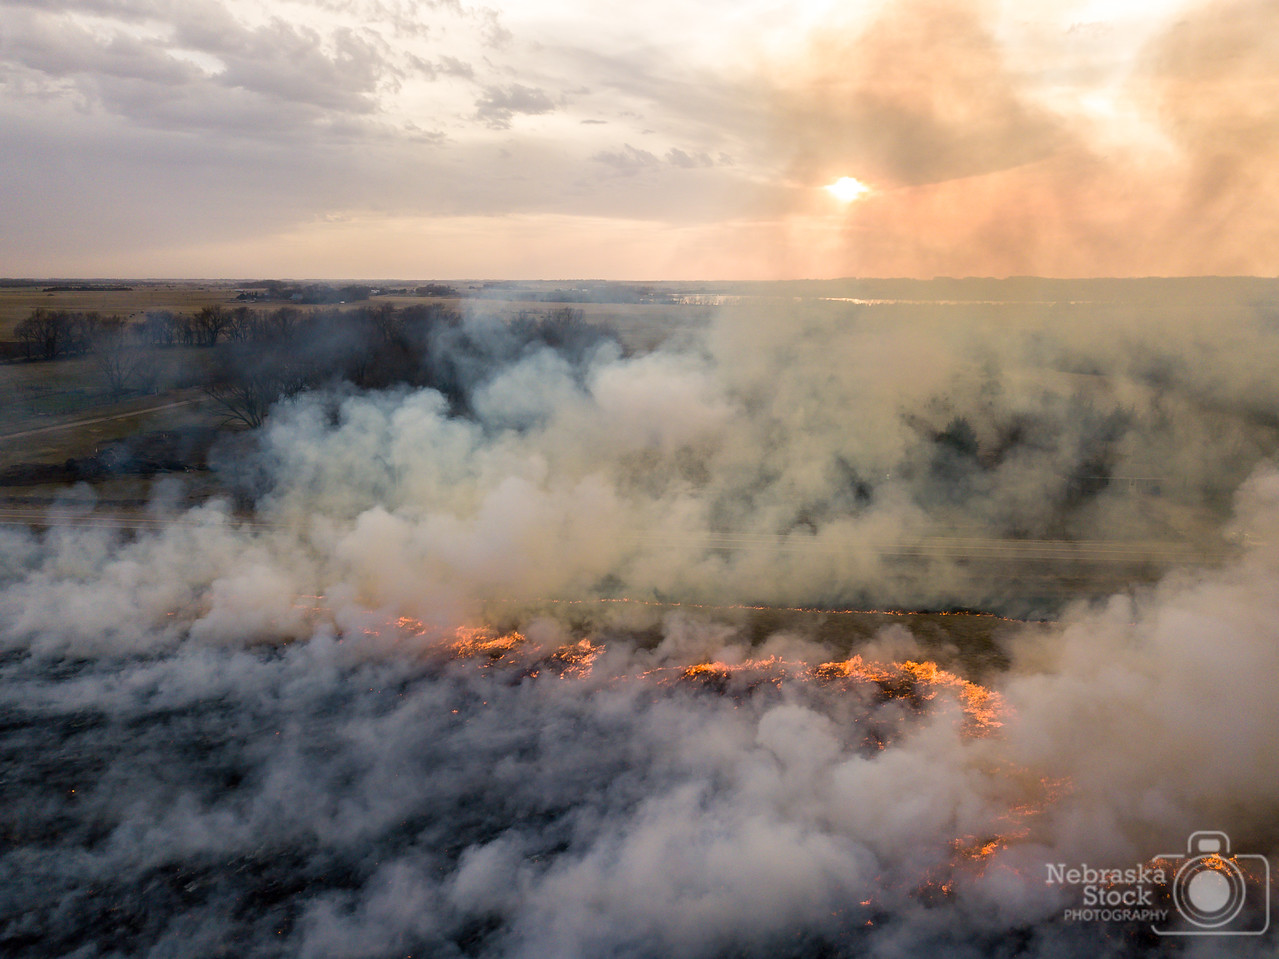 4-11-2018<br /> 101/365<br /> A controlled burn from 500 feet... Wednesday night, Pierce Fire assisted Game and Parks on a couple of burns in Pierce County while the weather was nice. This was the second burn of the night right south of Willow Lake. <br /> Photo taken with a DJI Mavic Pro <br /> ISO 400<br /> 1/400th at F22<br /> (56103)